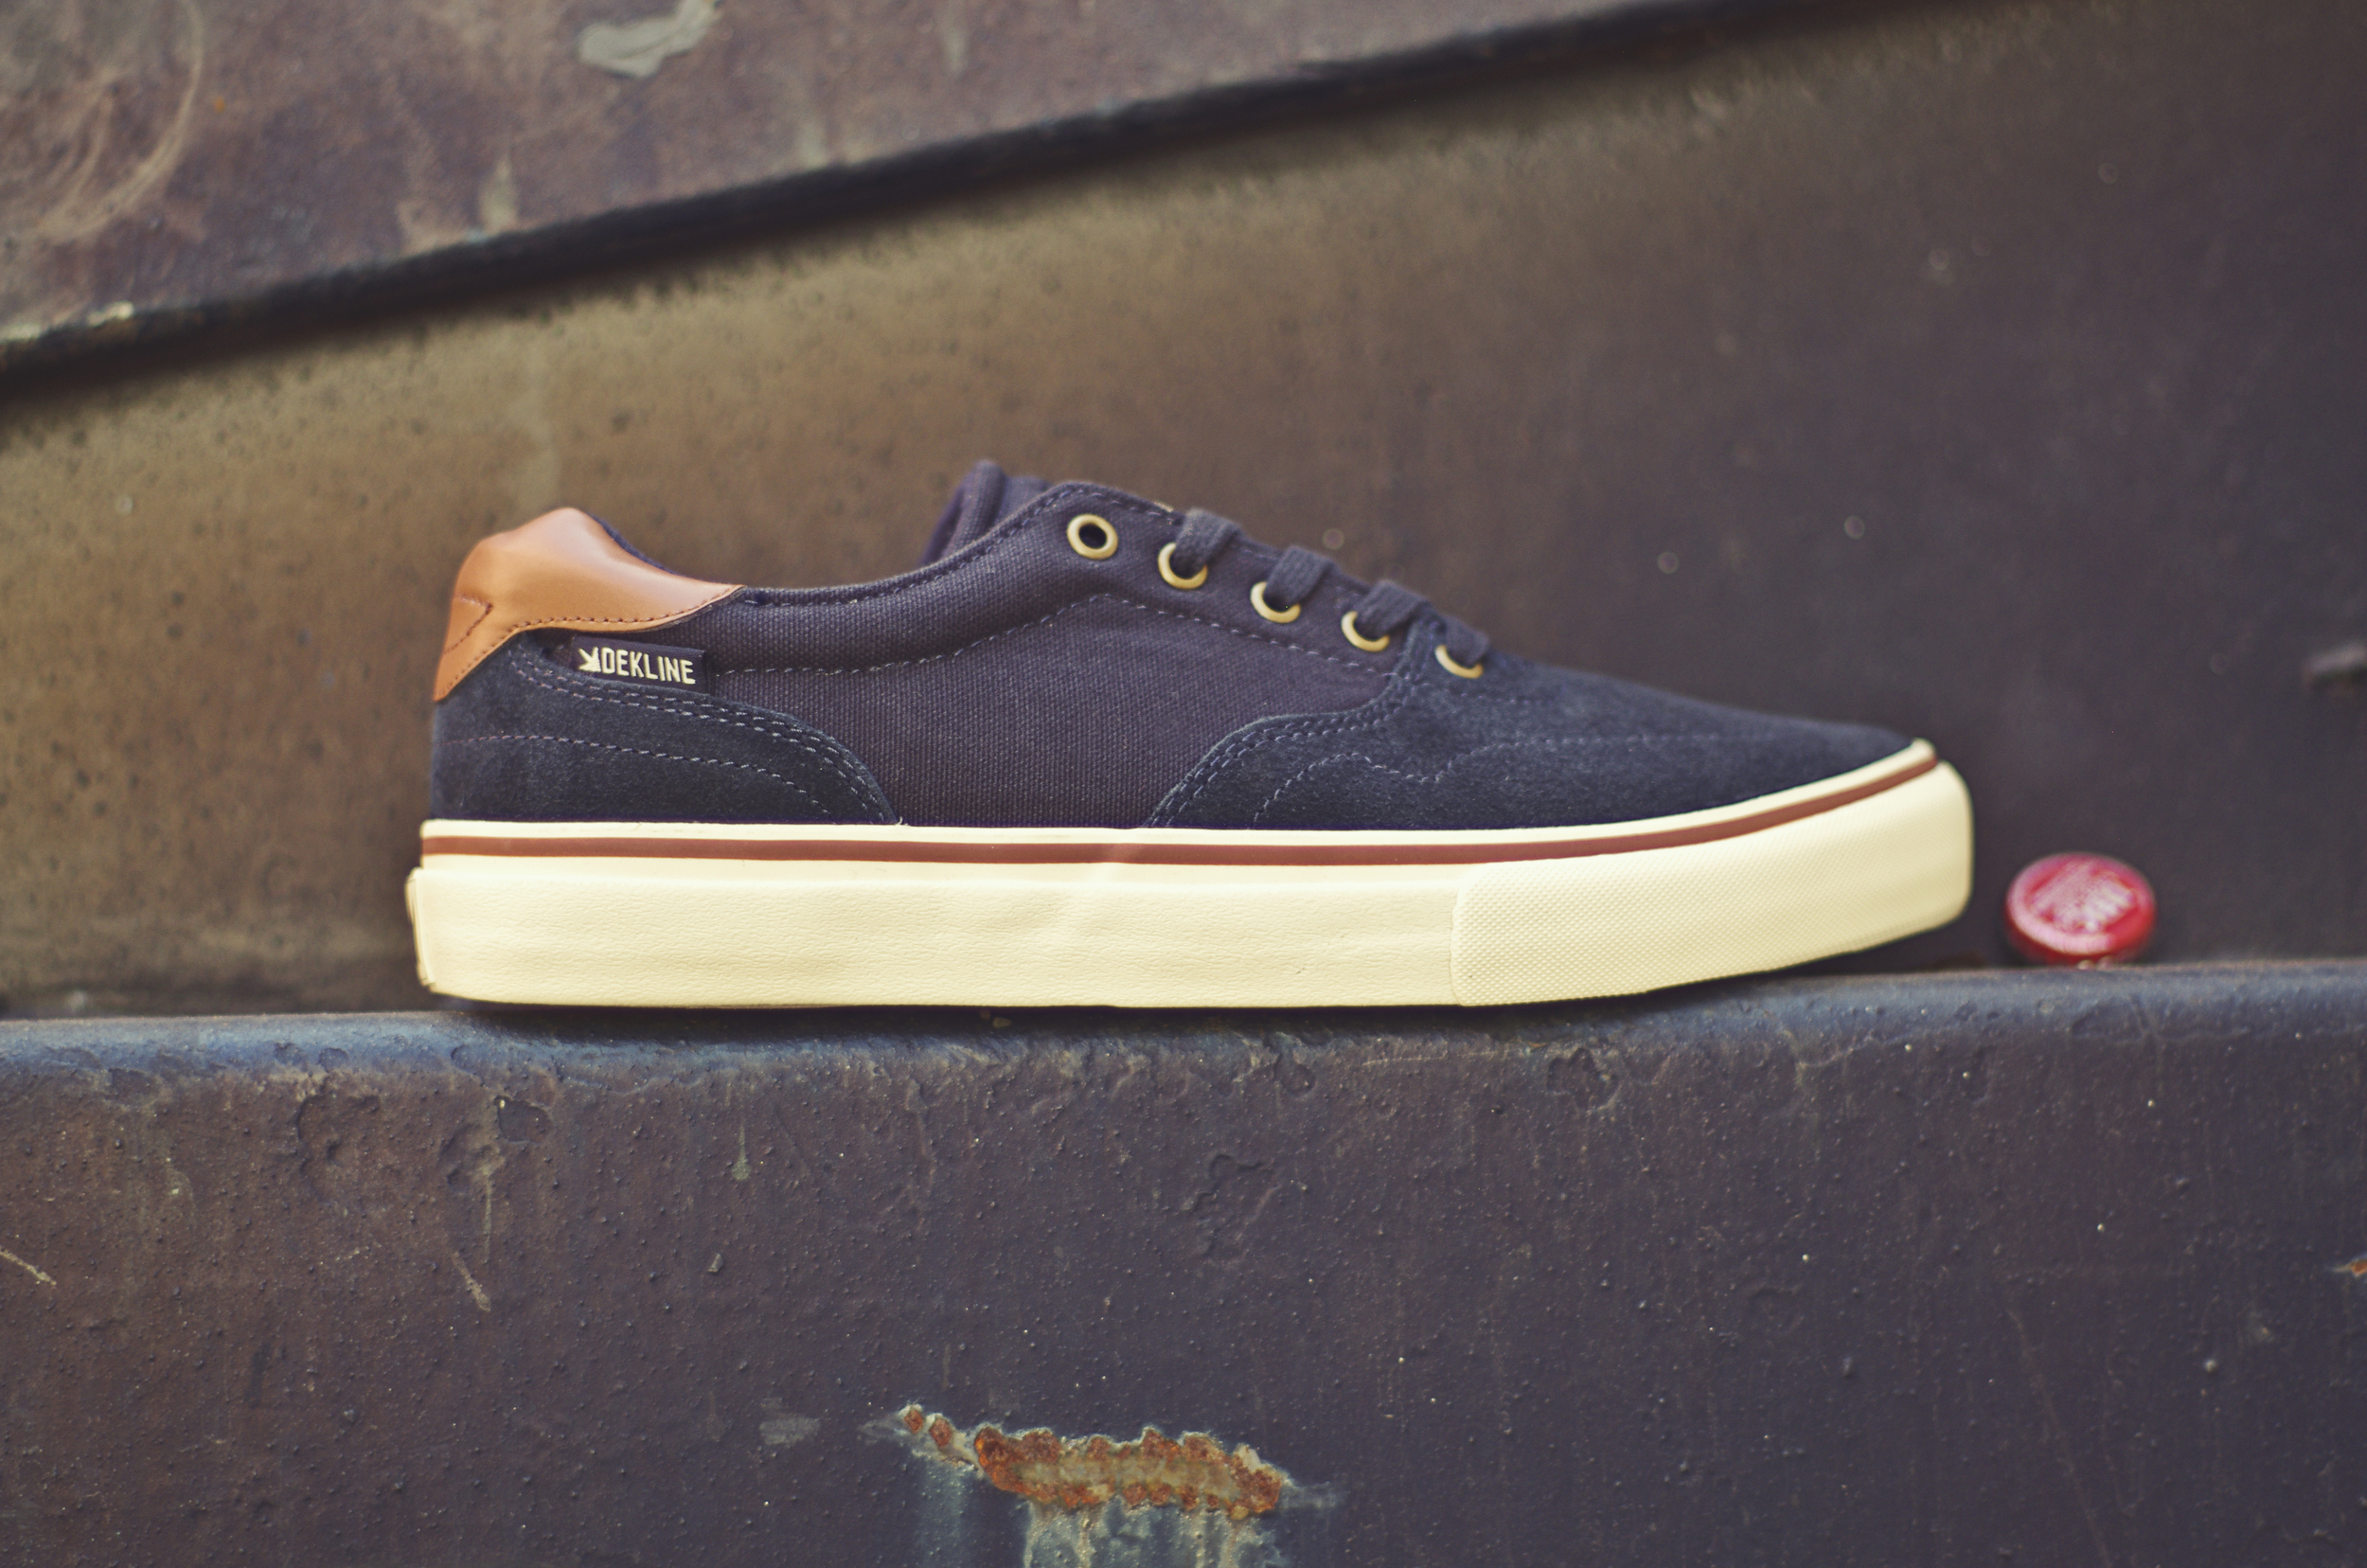 Wayland - $65 (Navy/Antique White/Gingerbread) his shoe comes in a navy canvas and suede upper with antique white vulc sole, metal eyelets and standard navy laces.